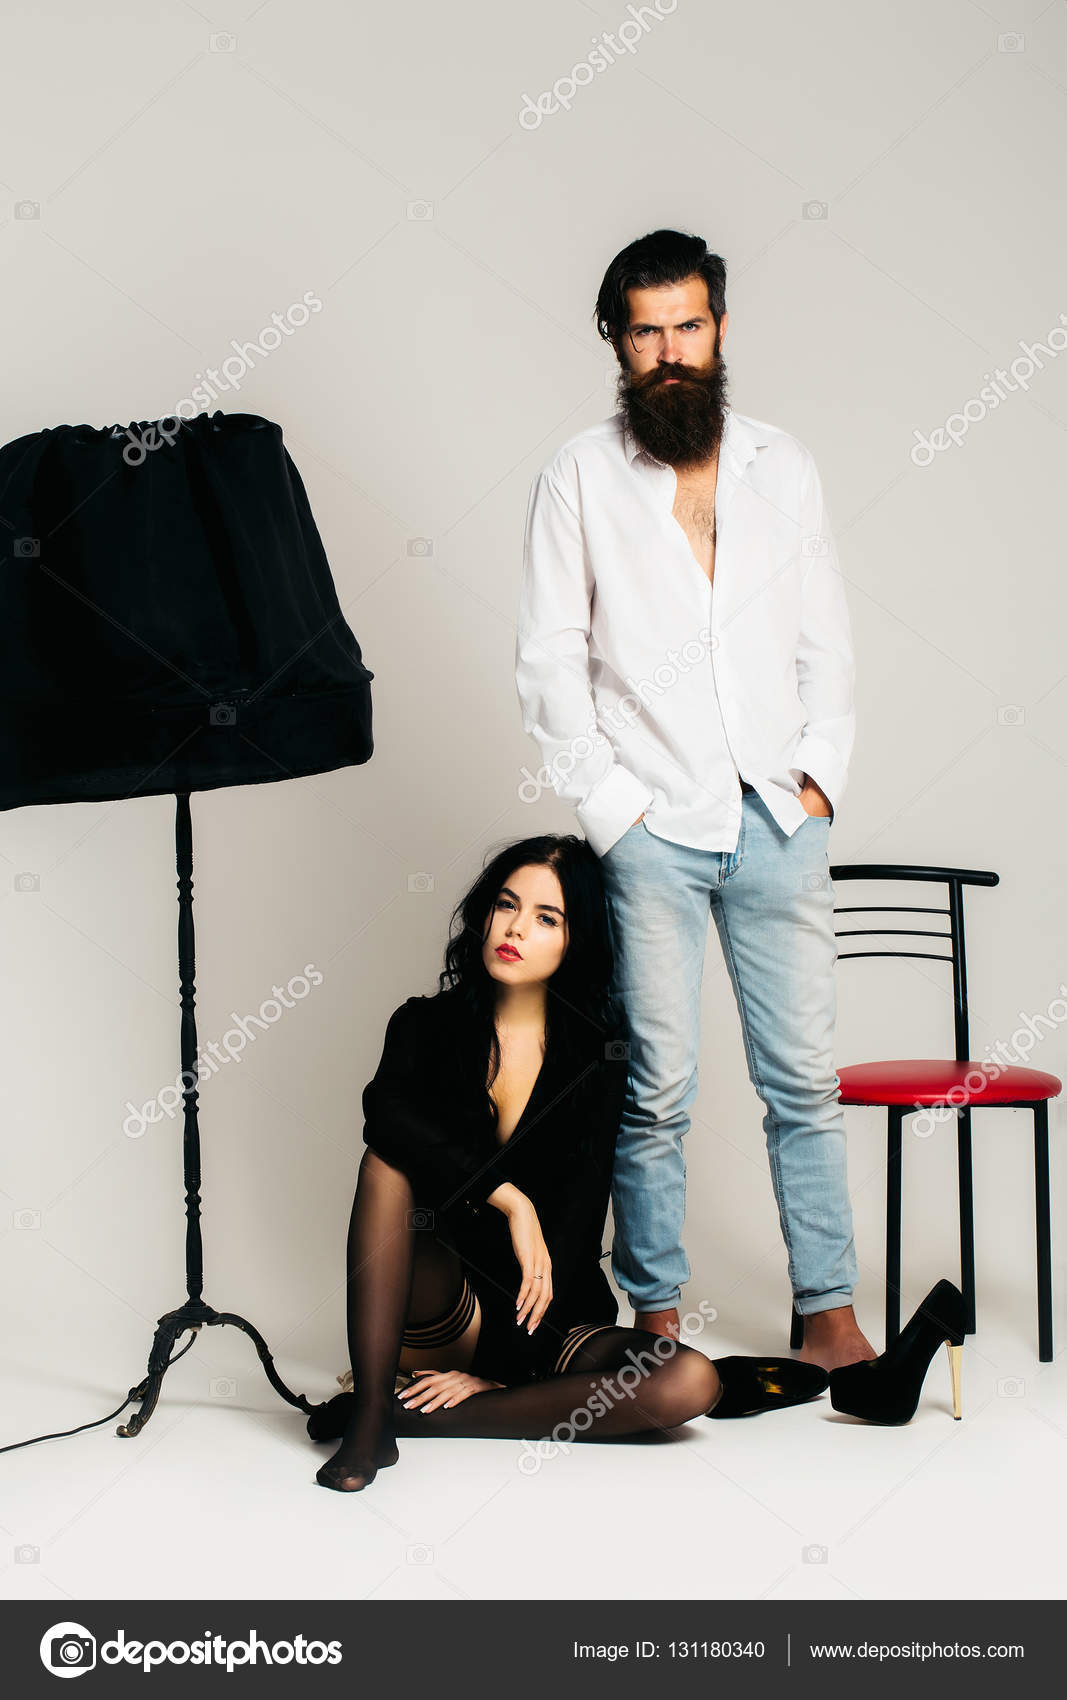 Sexy Couple On Chair With Lamp U2014 Stock Photo